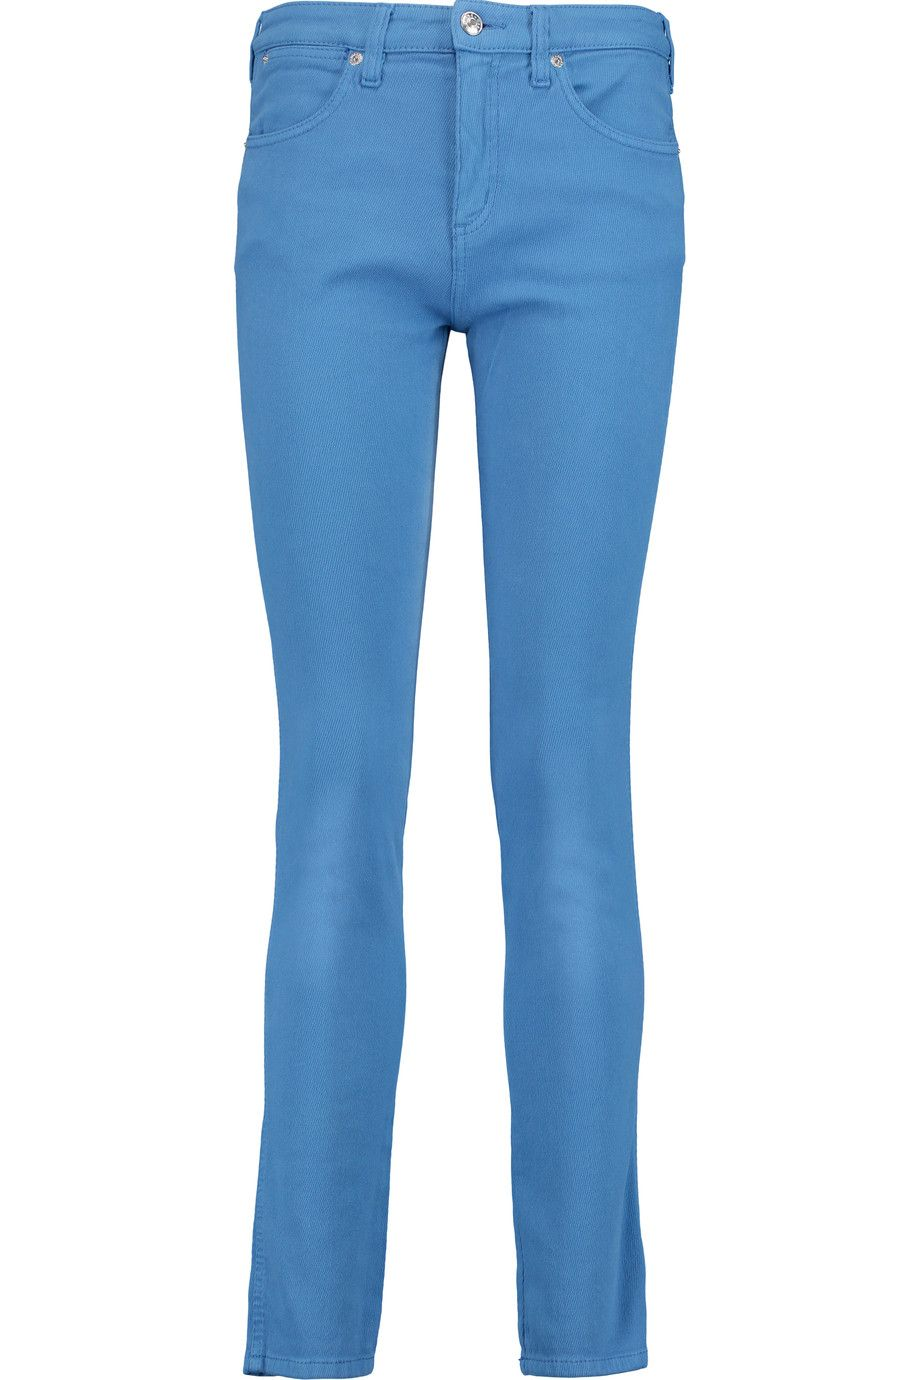 SEE BY CHLOÉ Cotton-Corduroy Mid-Rise Slim-Fit Jeans. #seebychloé #cloth #jeans